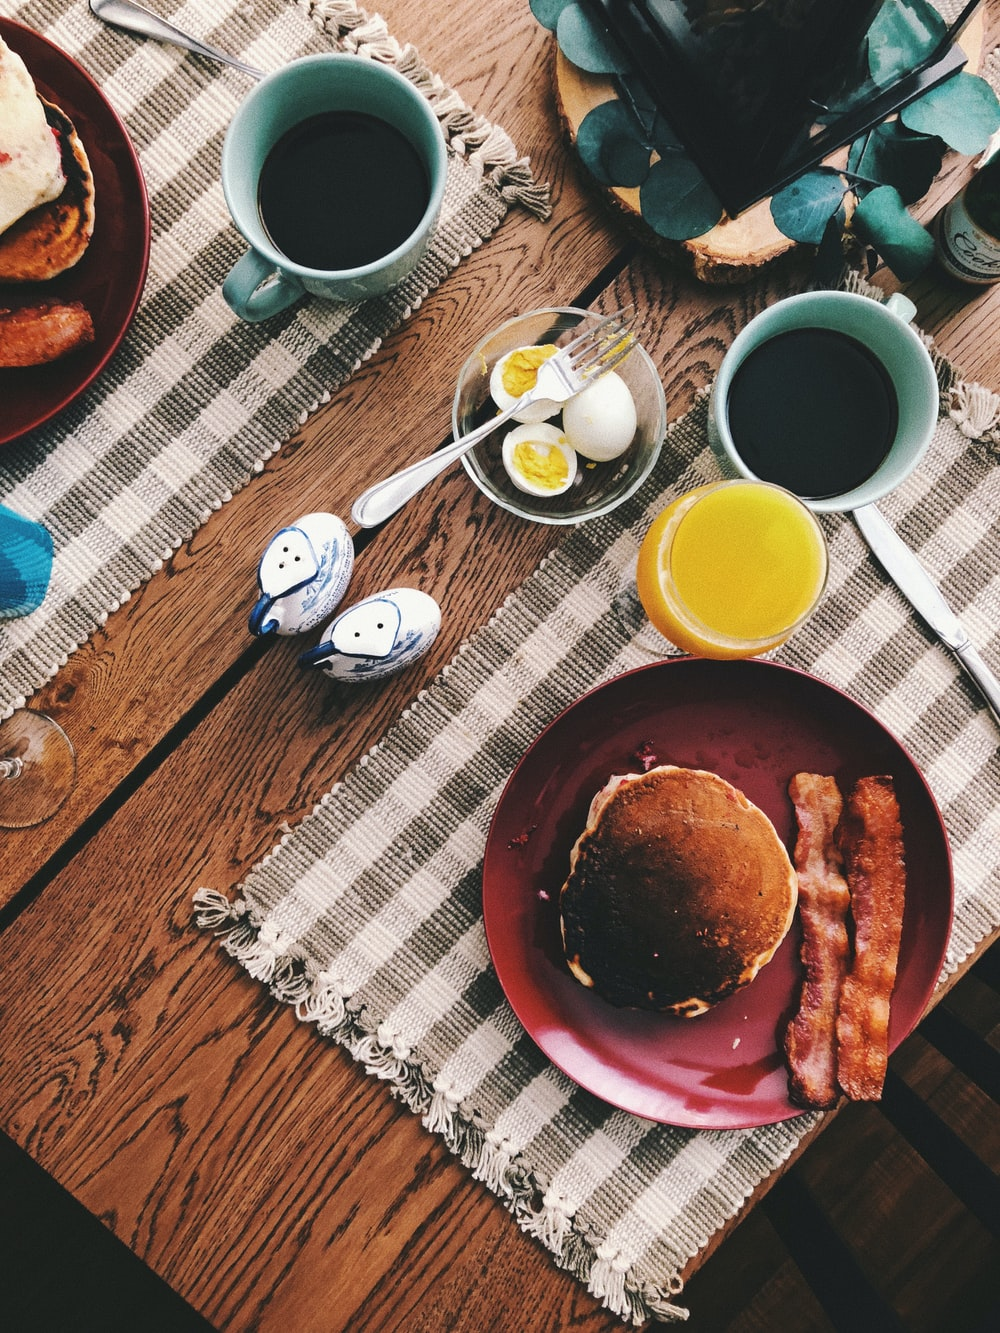 baked bread on round red ceramic plate near glass of orange juice, cup of coffee, and boiled eggs